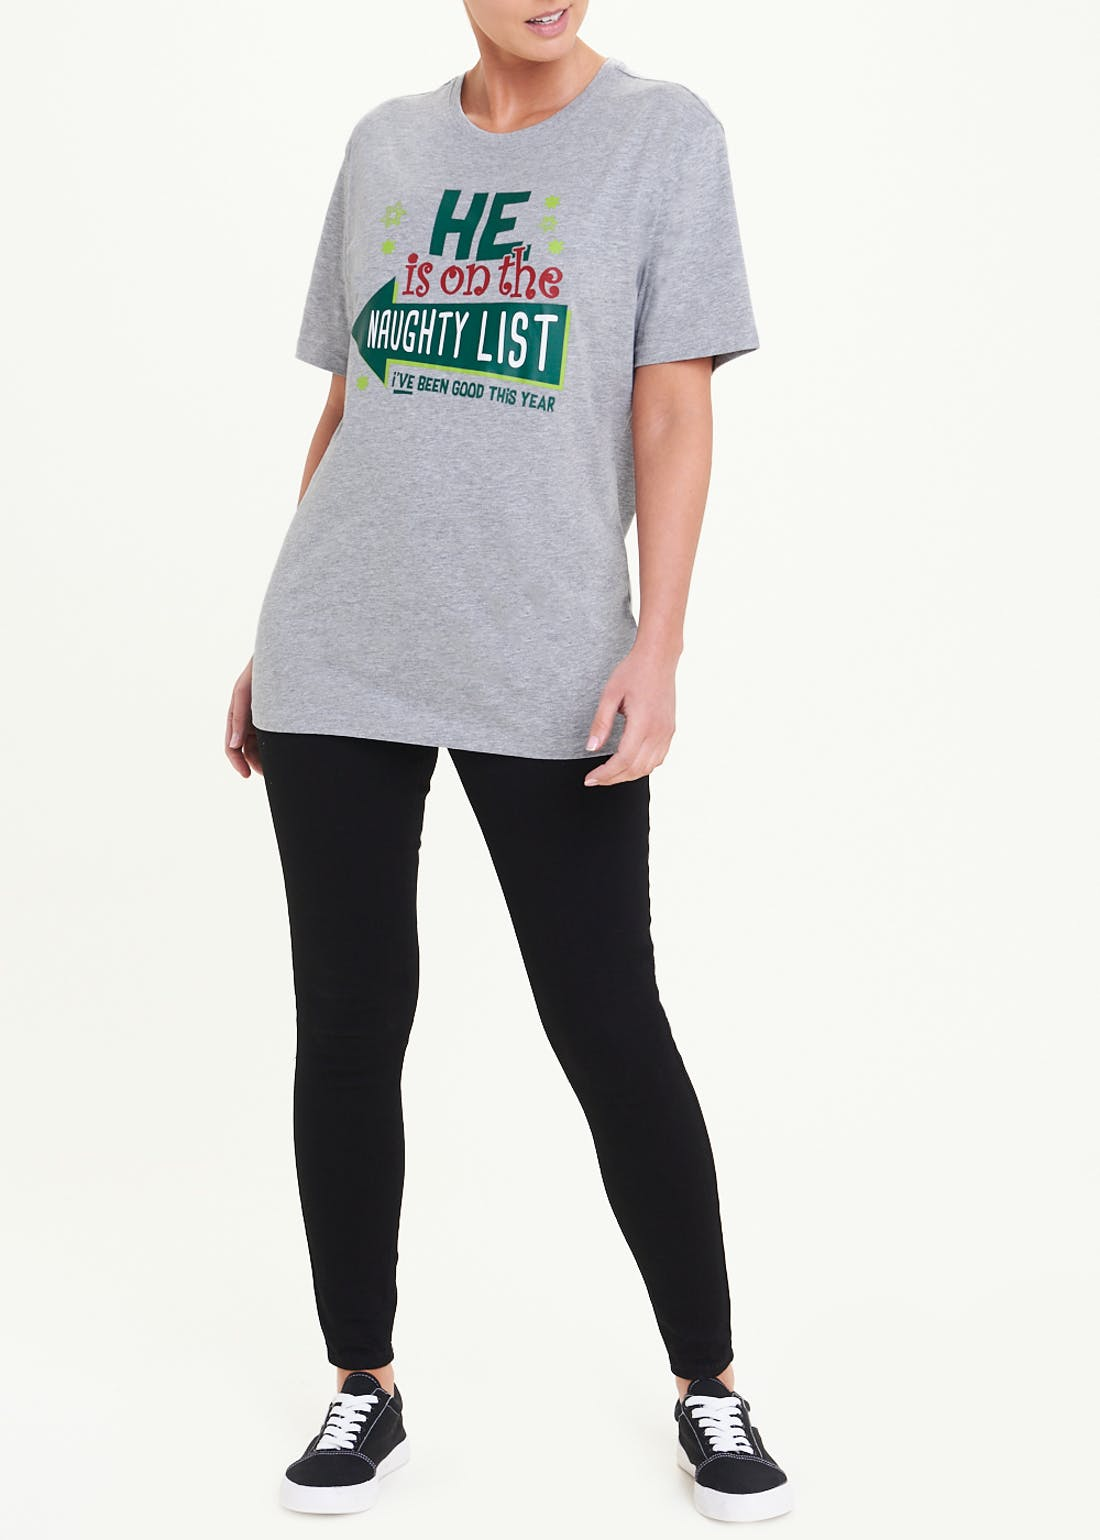 Naughty List Christmas T-Shirt